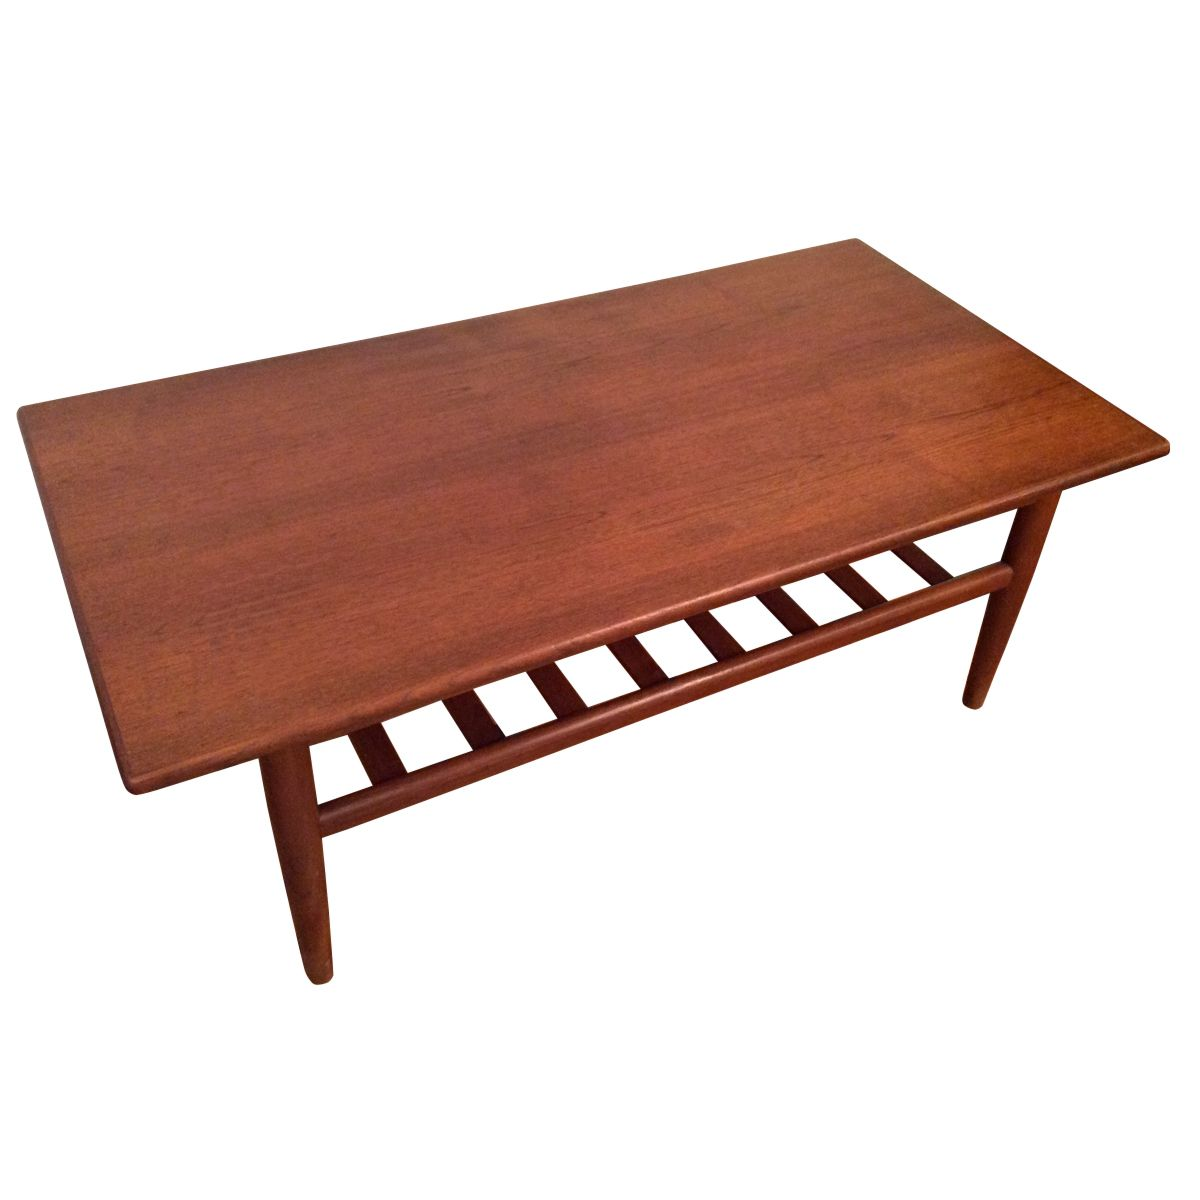 Scandinavian Teak Coffee Table: Teak Danish Coffee Table For Sale At Pamono